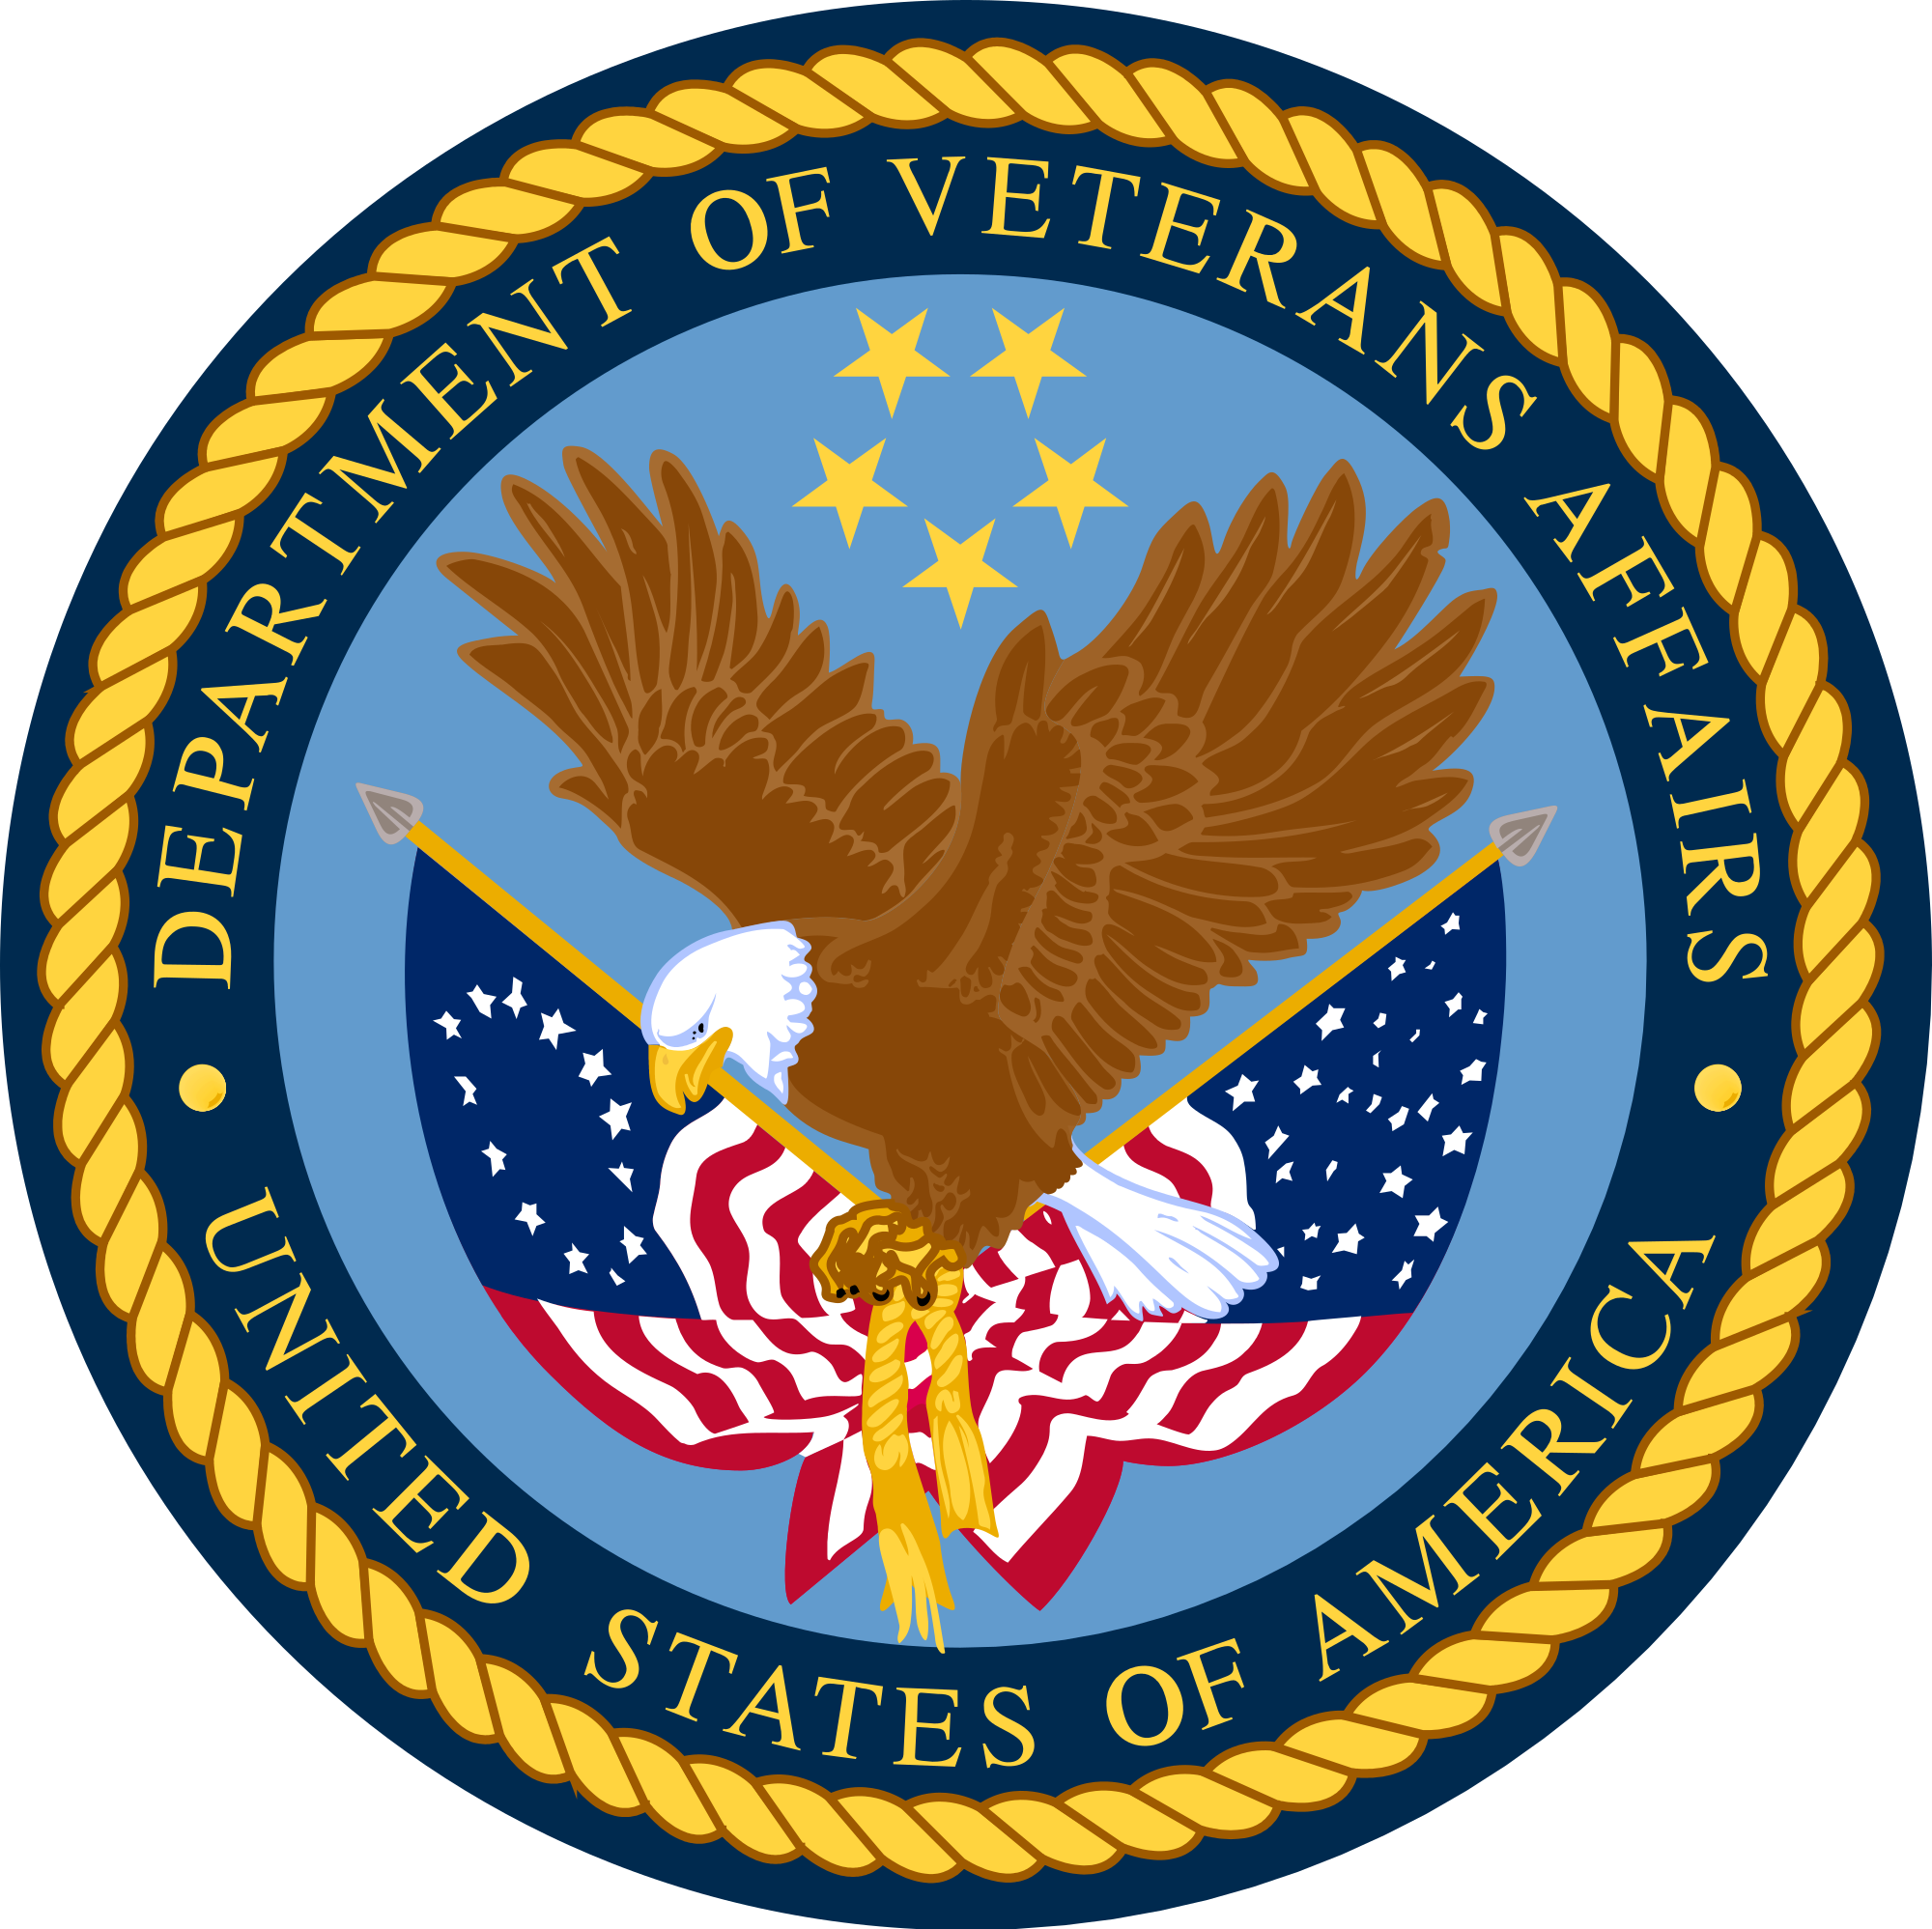 us-dept-of-vetrans-affairs-logo.png